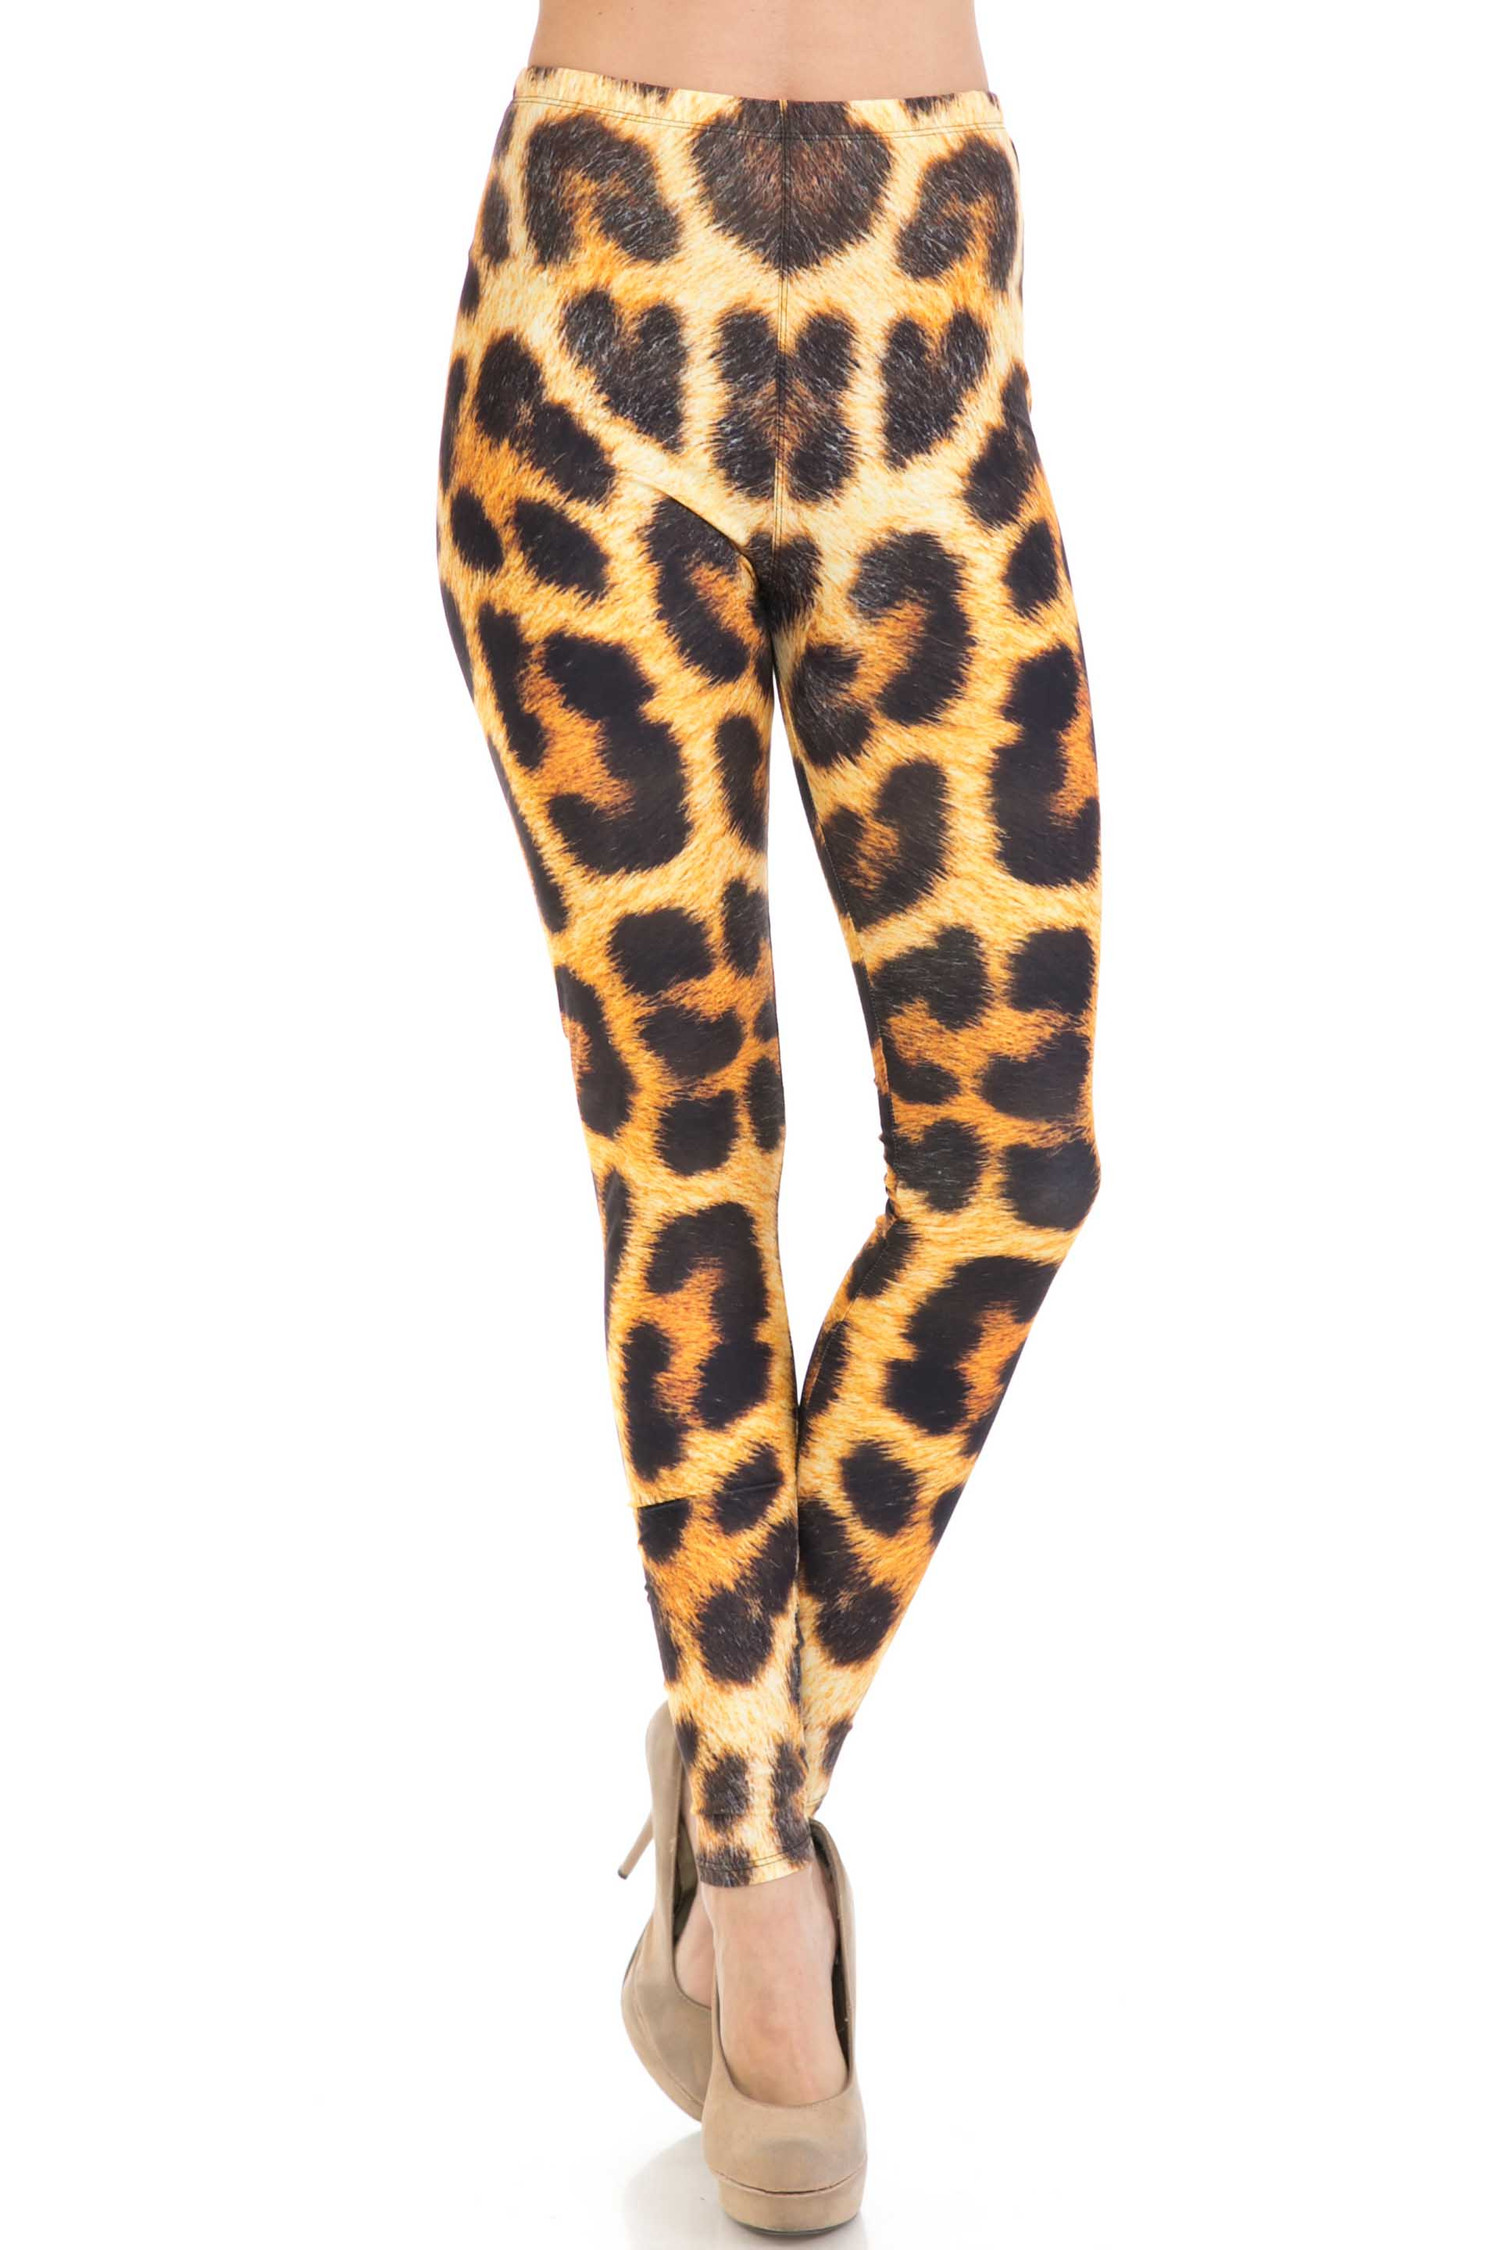 Creamy Soft Spotted Panther Leggings - USA Fashion™